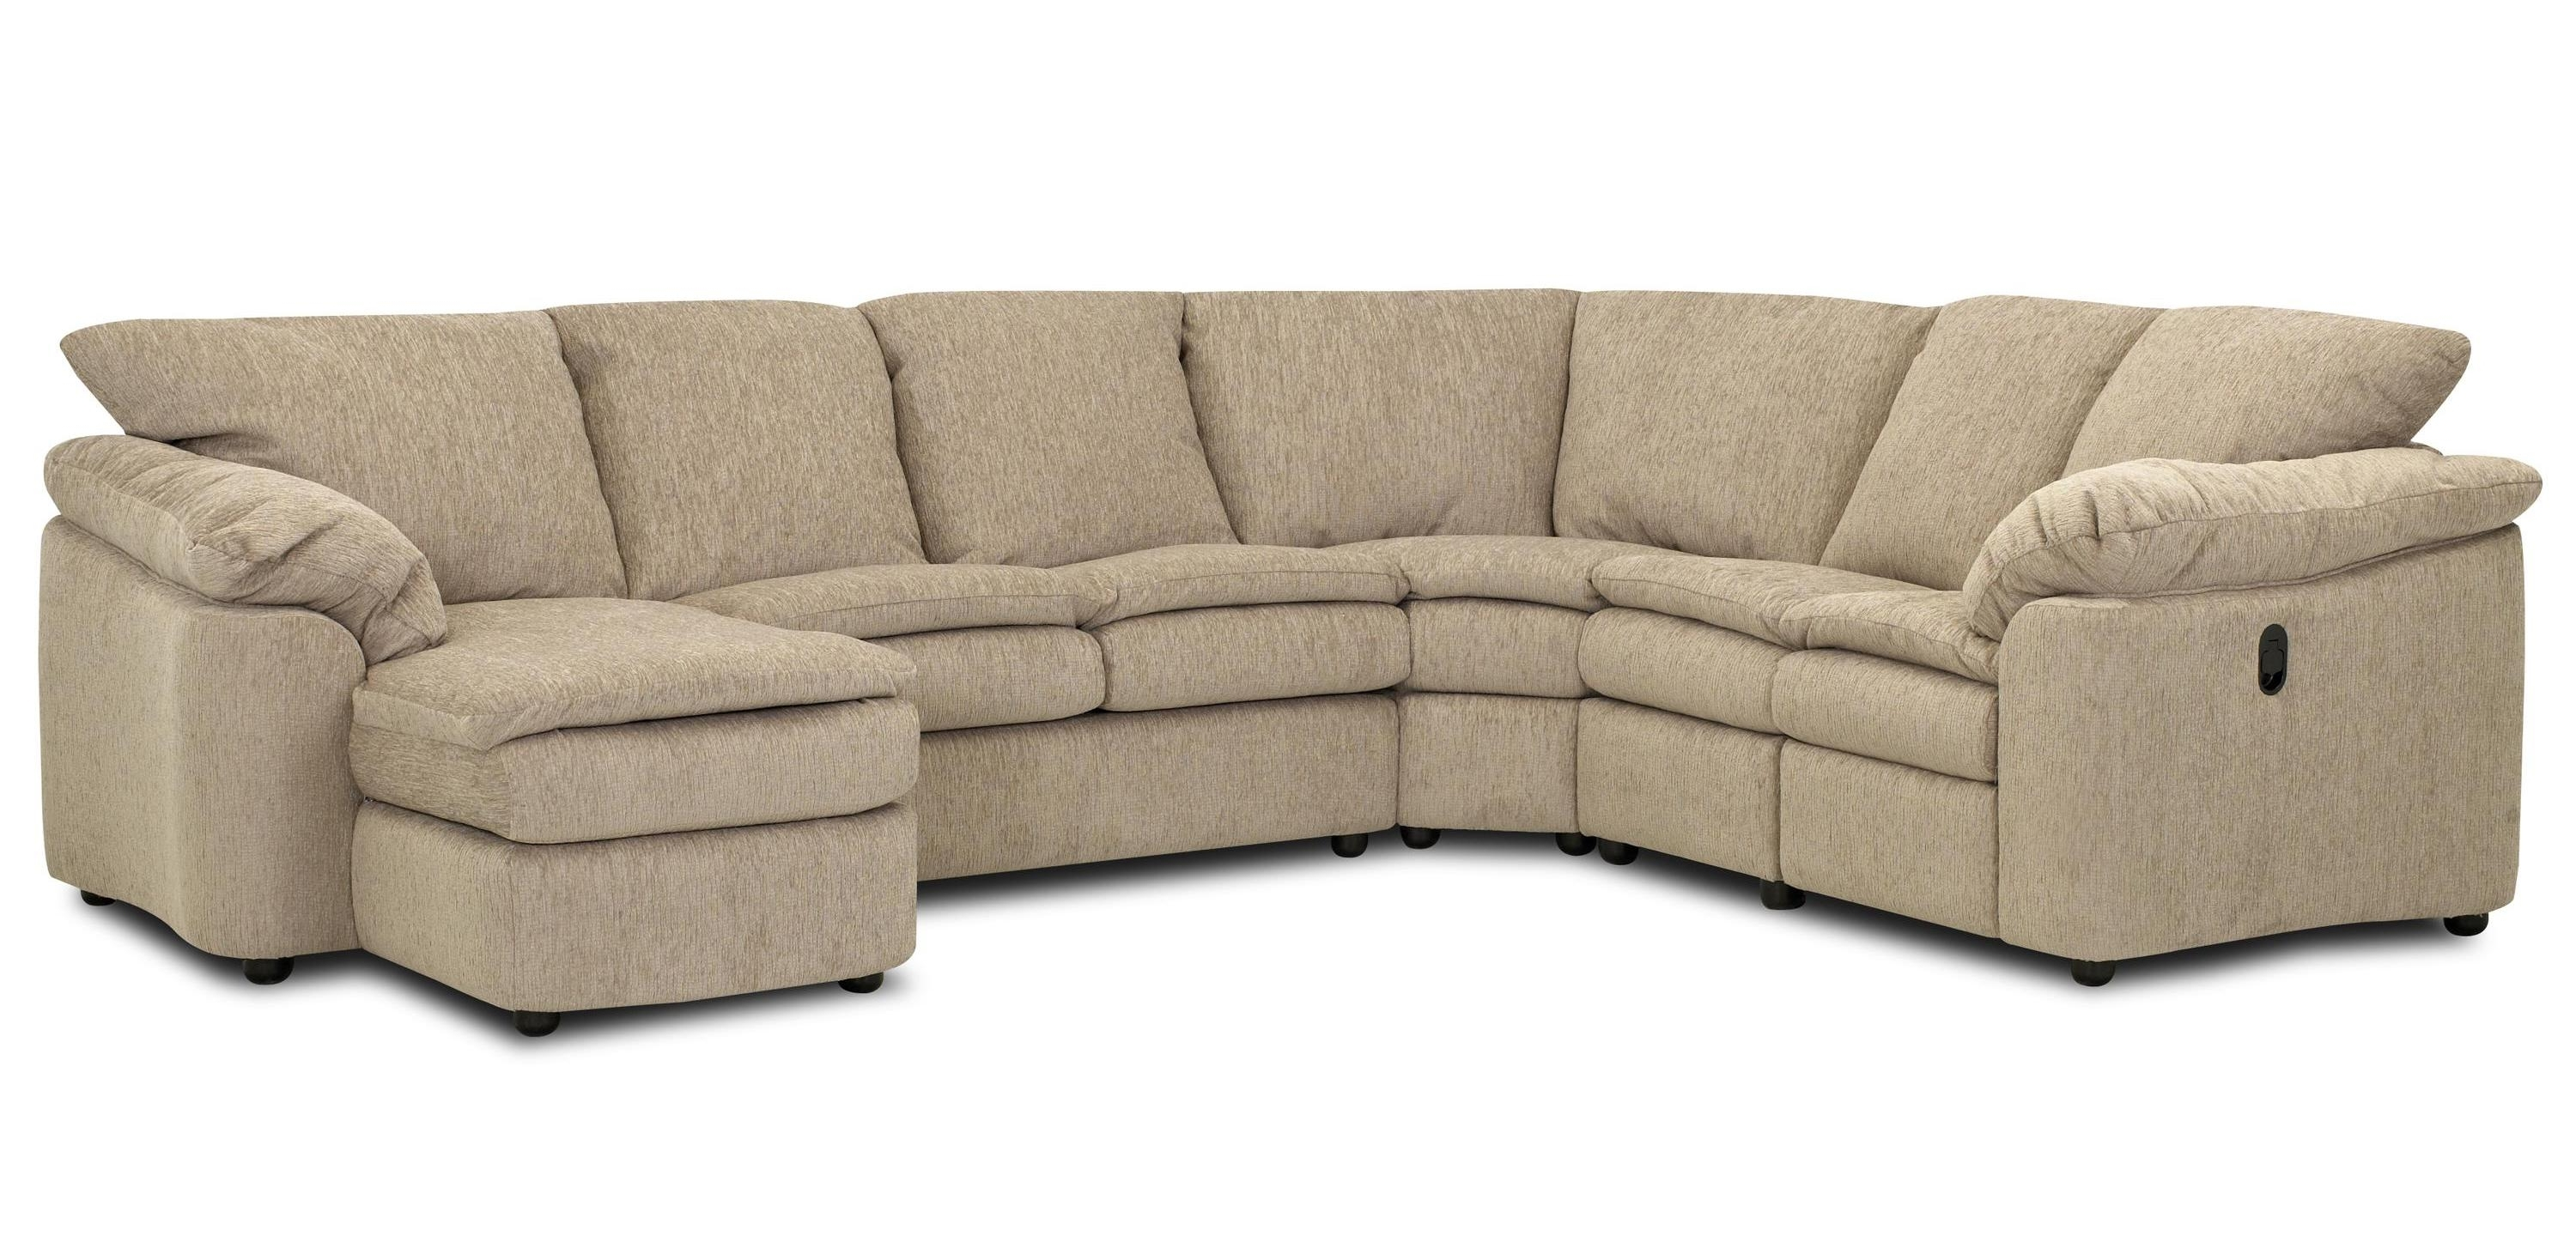 Klaussner Legacy Dual Reclining Left Arm Loveseat, Sleeper And With Regard To Well Known Dual Chaise Sectionals (Gallery 14 of 15)